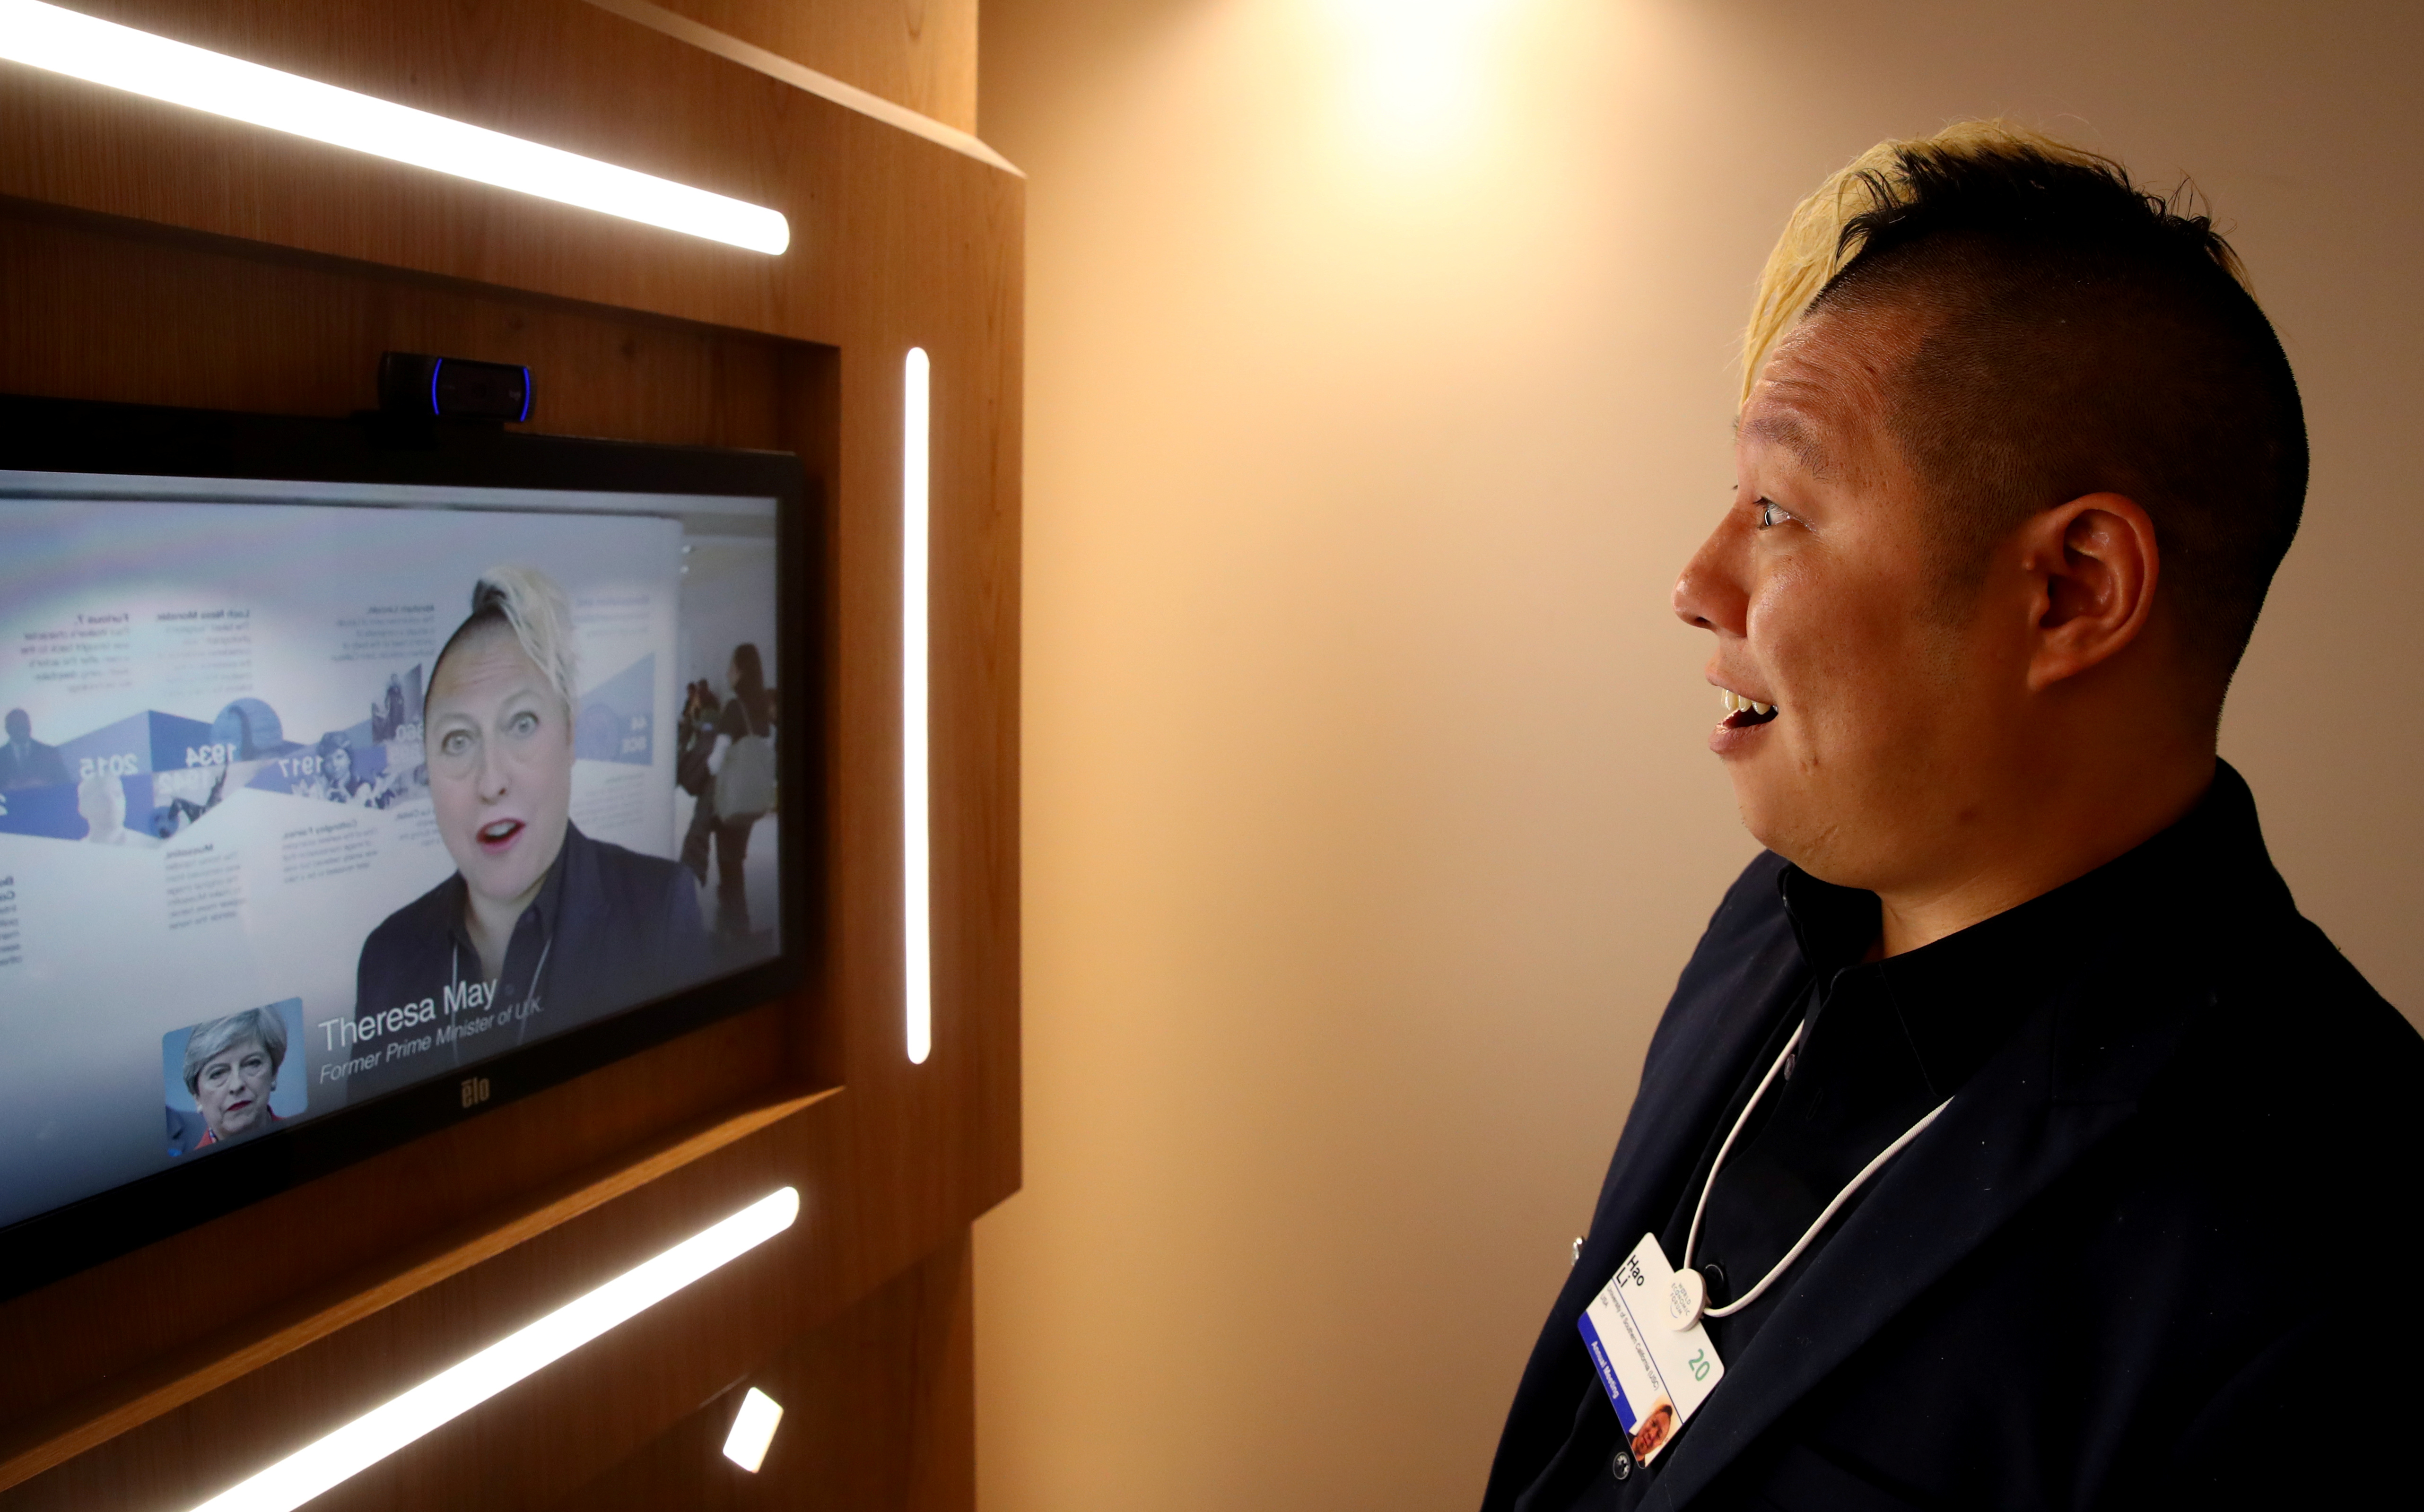 Associate professor of computer science at the University of Southern California Hao Li showcases a 'deepfake' video with Britain's former Prime Minister Theresa May during the 50th World Economic Forum (WEF) annual meeting in Davos, Switzerland, January 22, 2020. REUTERS/Denis Balibouse